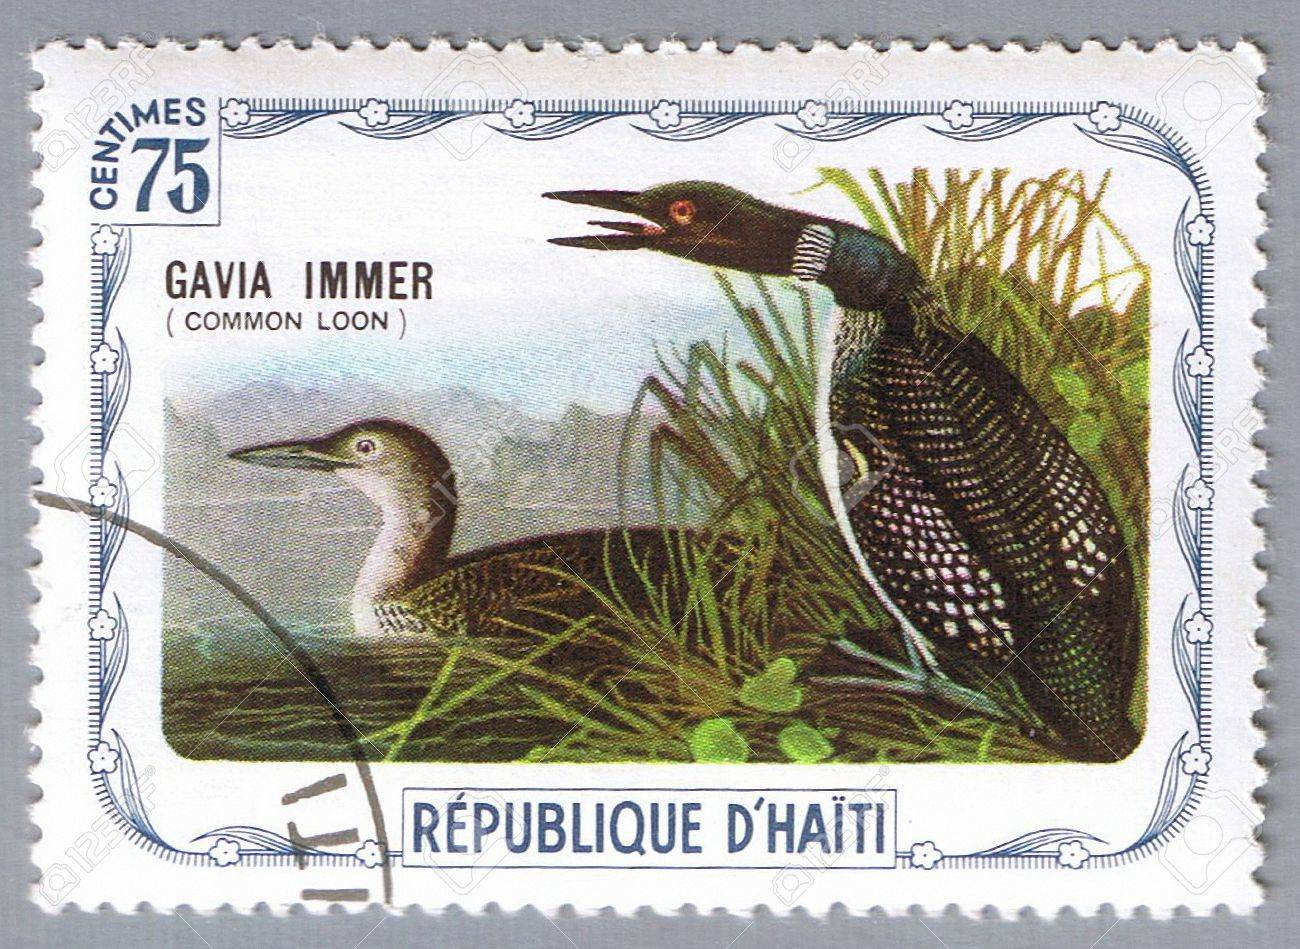 HAITI � CIRCA 1975: A stamp printed in Haiti shows Common loon, series devoted to the birds, circa 1975 Stock Photo - 7883854